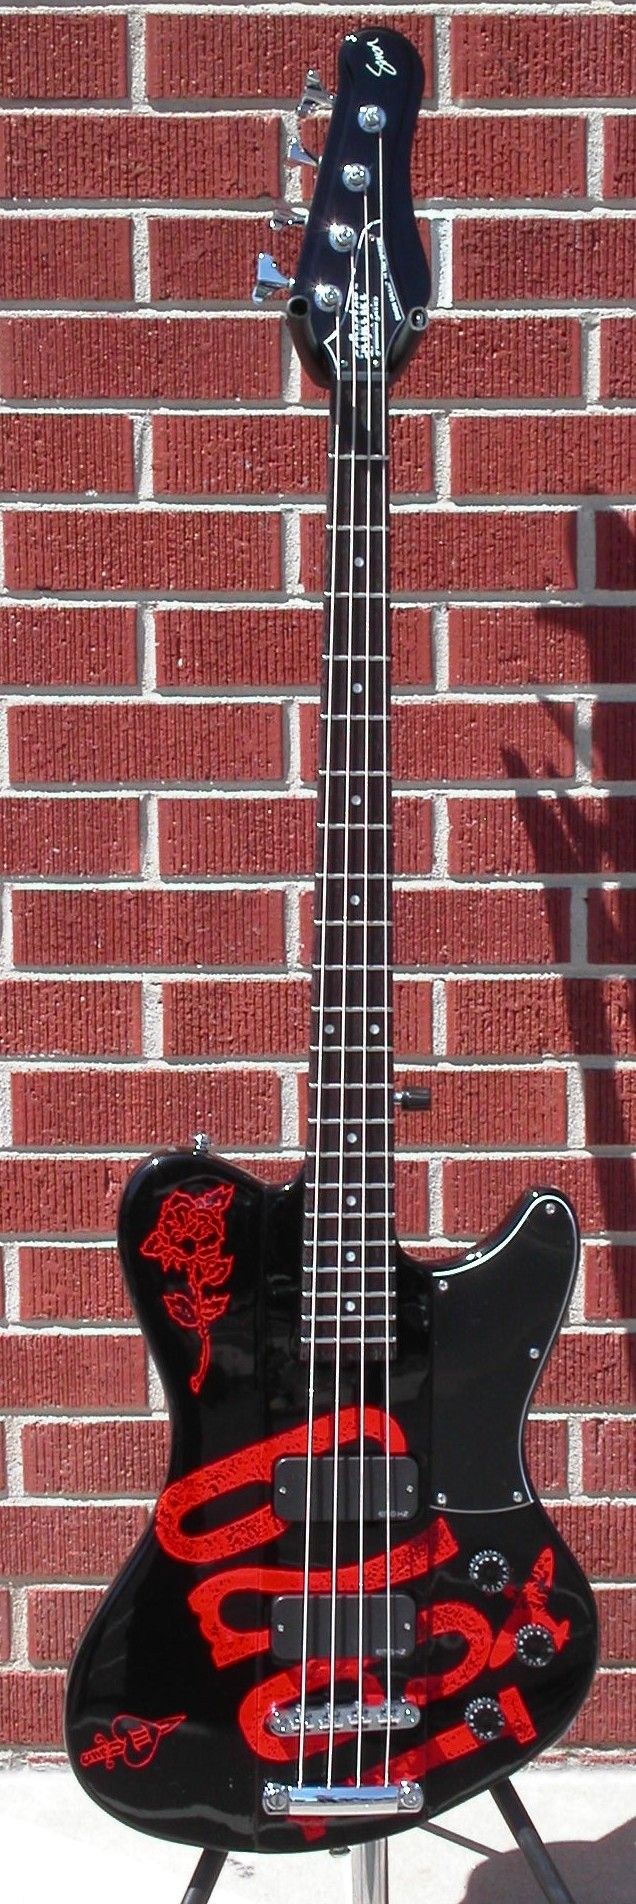 Schecter DIAMOND SERIES Simon Gallup/The Cure Ultra Spitfire Gloss Black w/Red Graphic 4-String Electric Bass Guitar